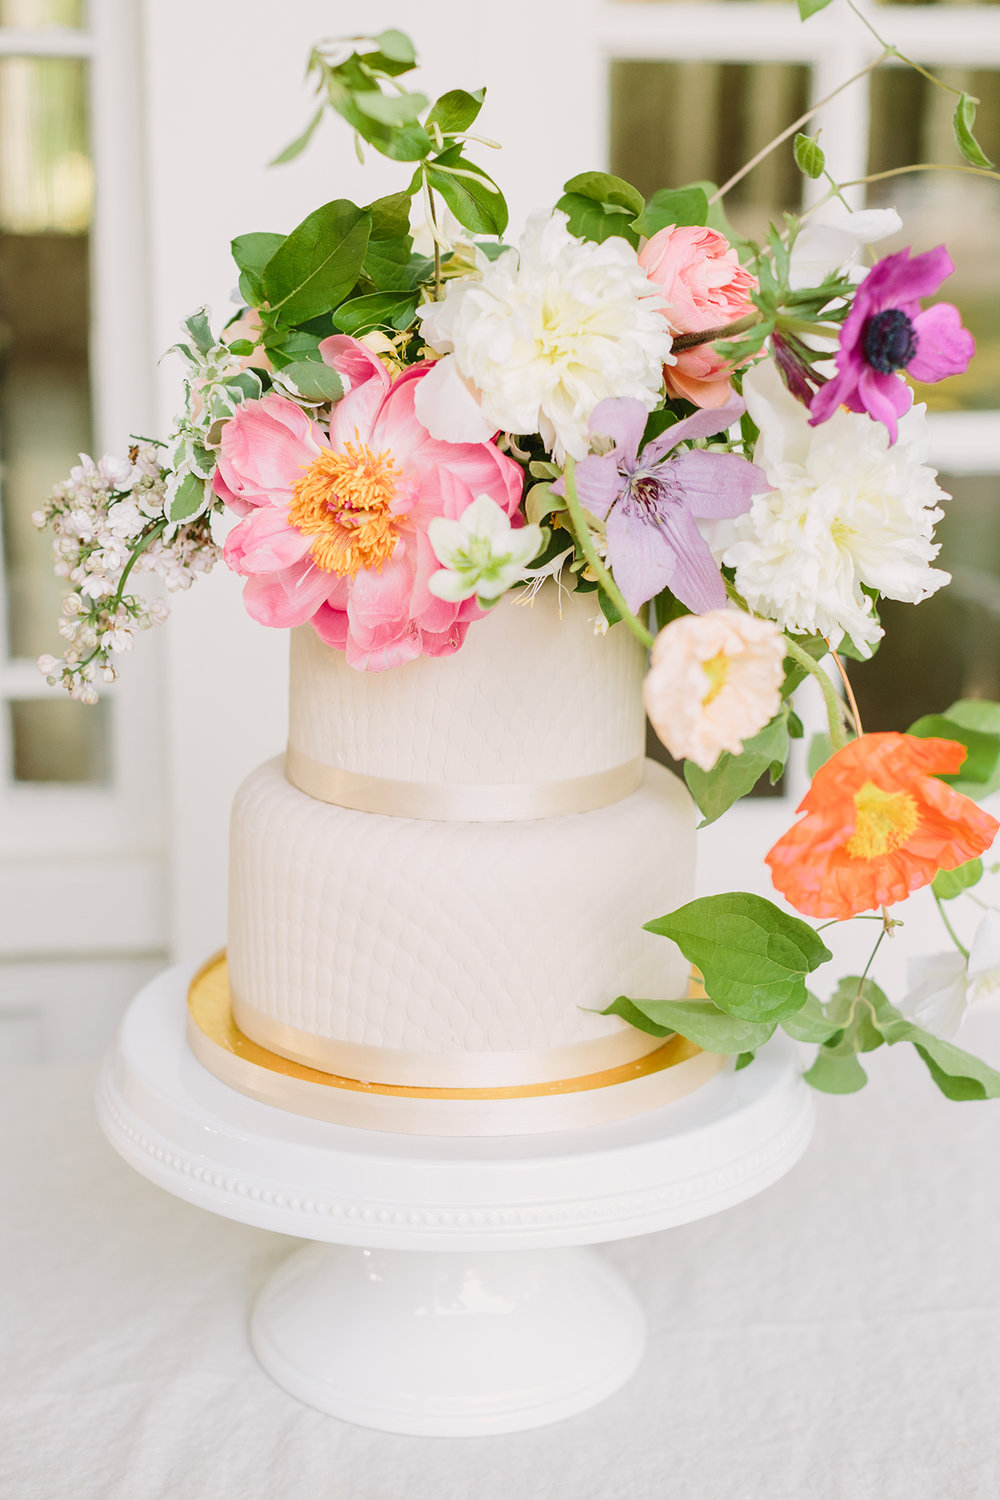 Floral accents on a simple round tier wedding cake